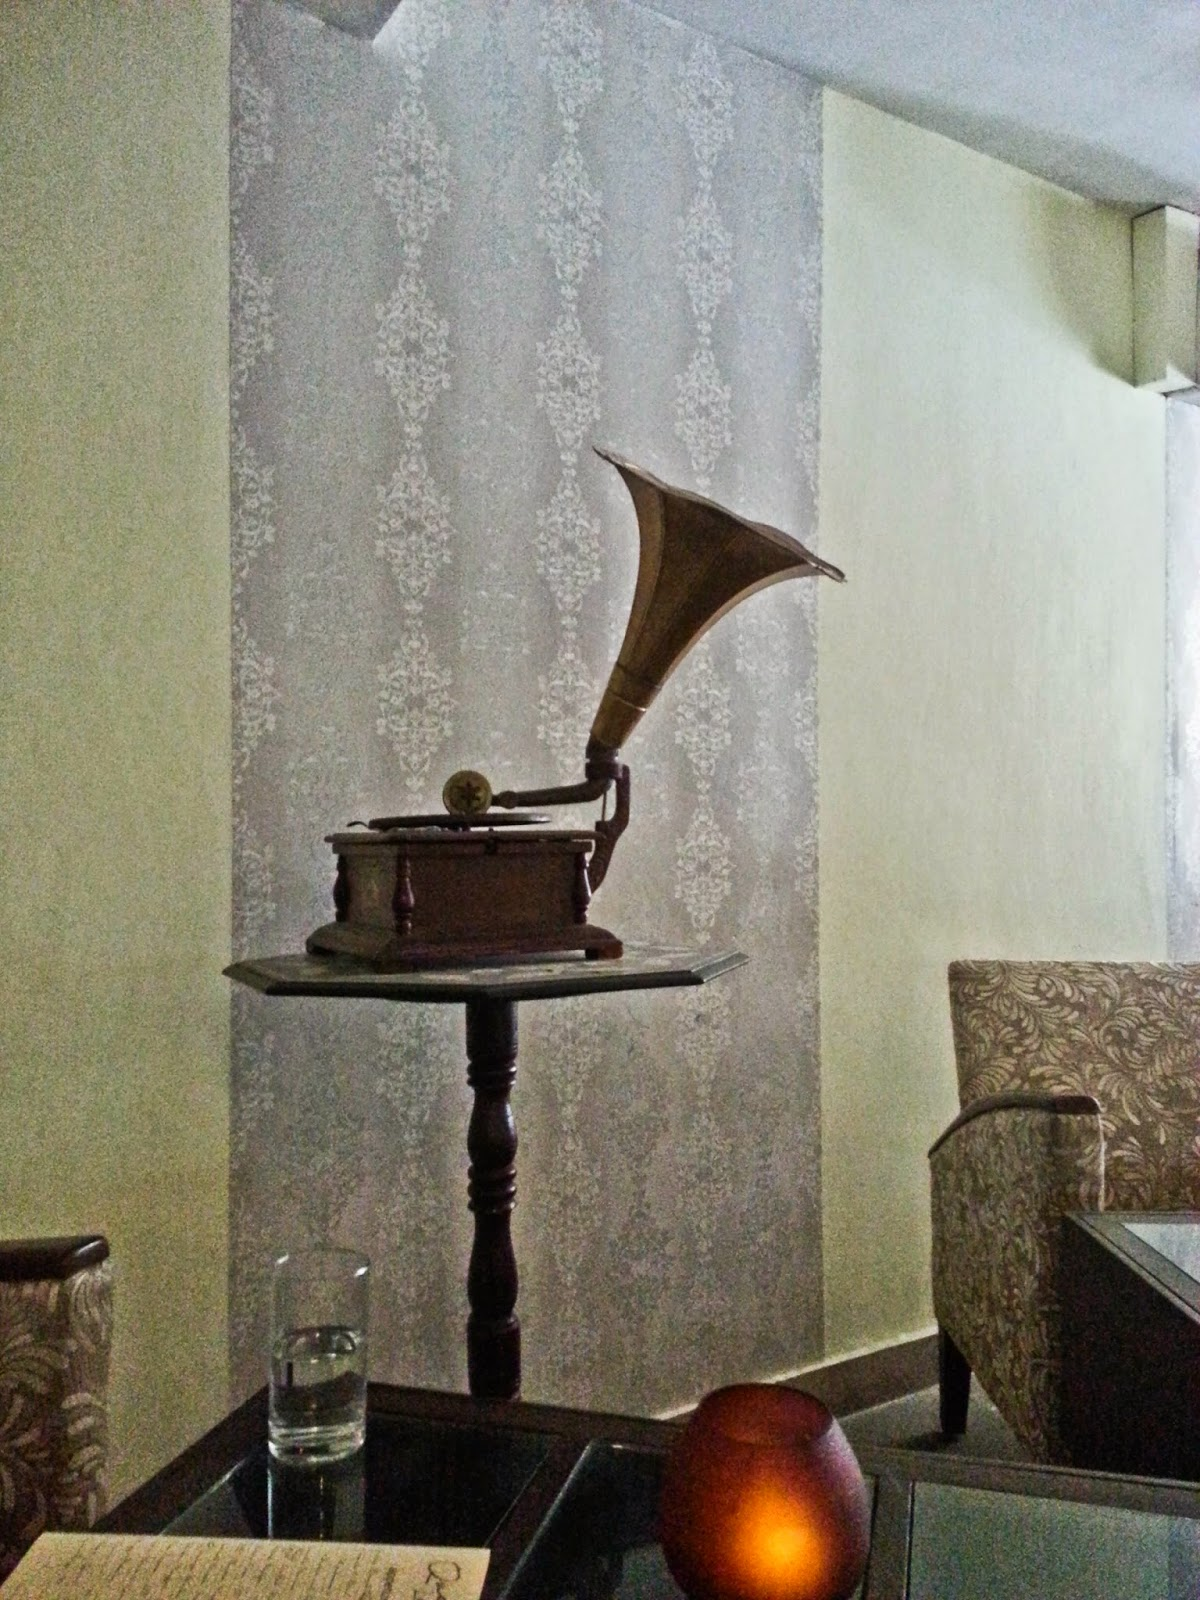 Gramophone at Quesa Lounge, Noida